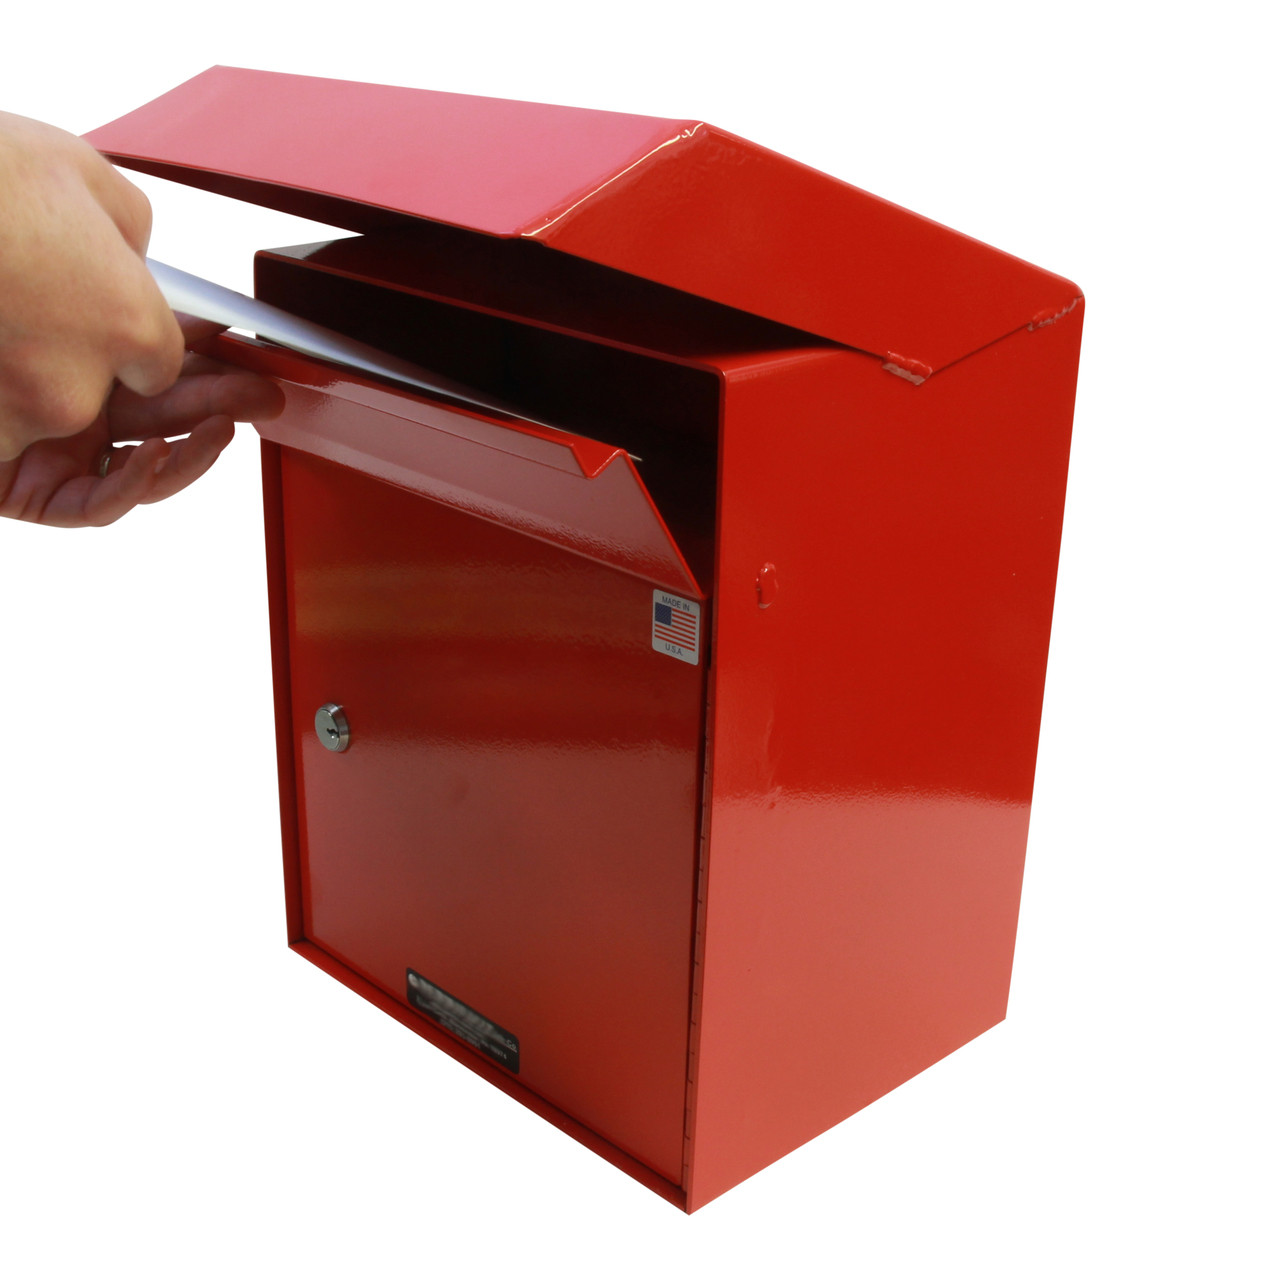 Envelope being dropped Outdoor Secure Payment Locking Drop Box